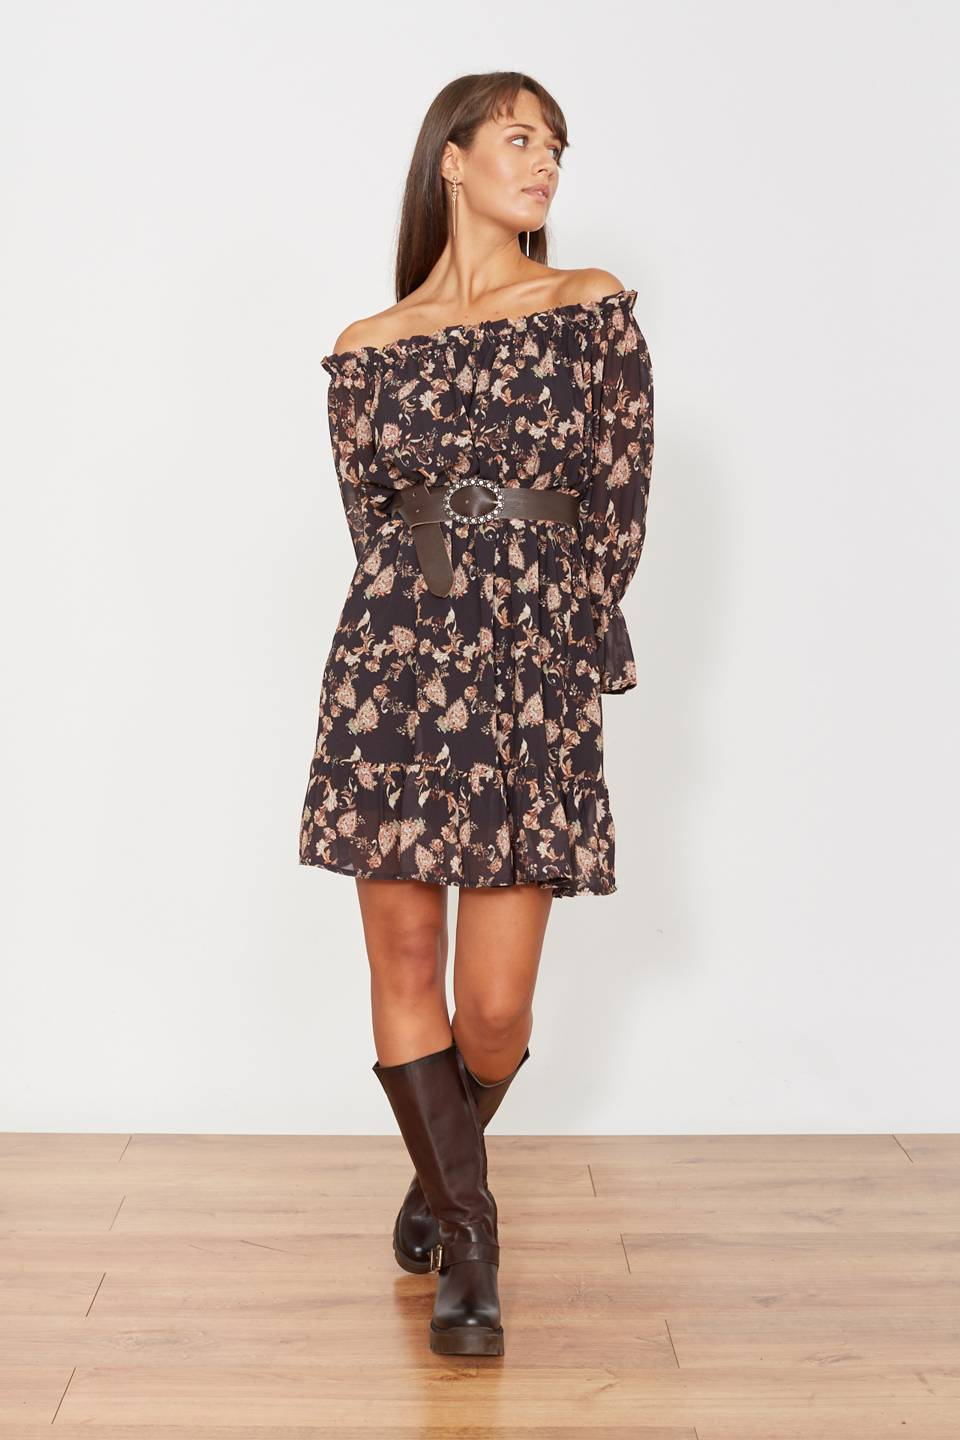 Mini-dress shiffer paisley moro - Autunno 2019 - Inverno 2020 | Brend